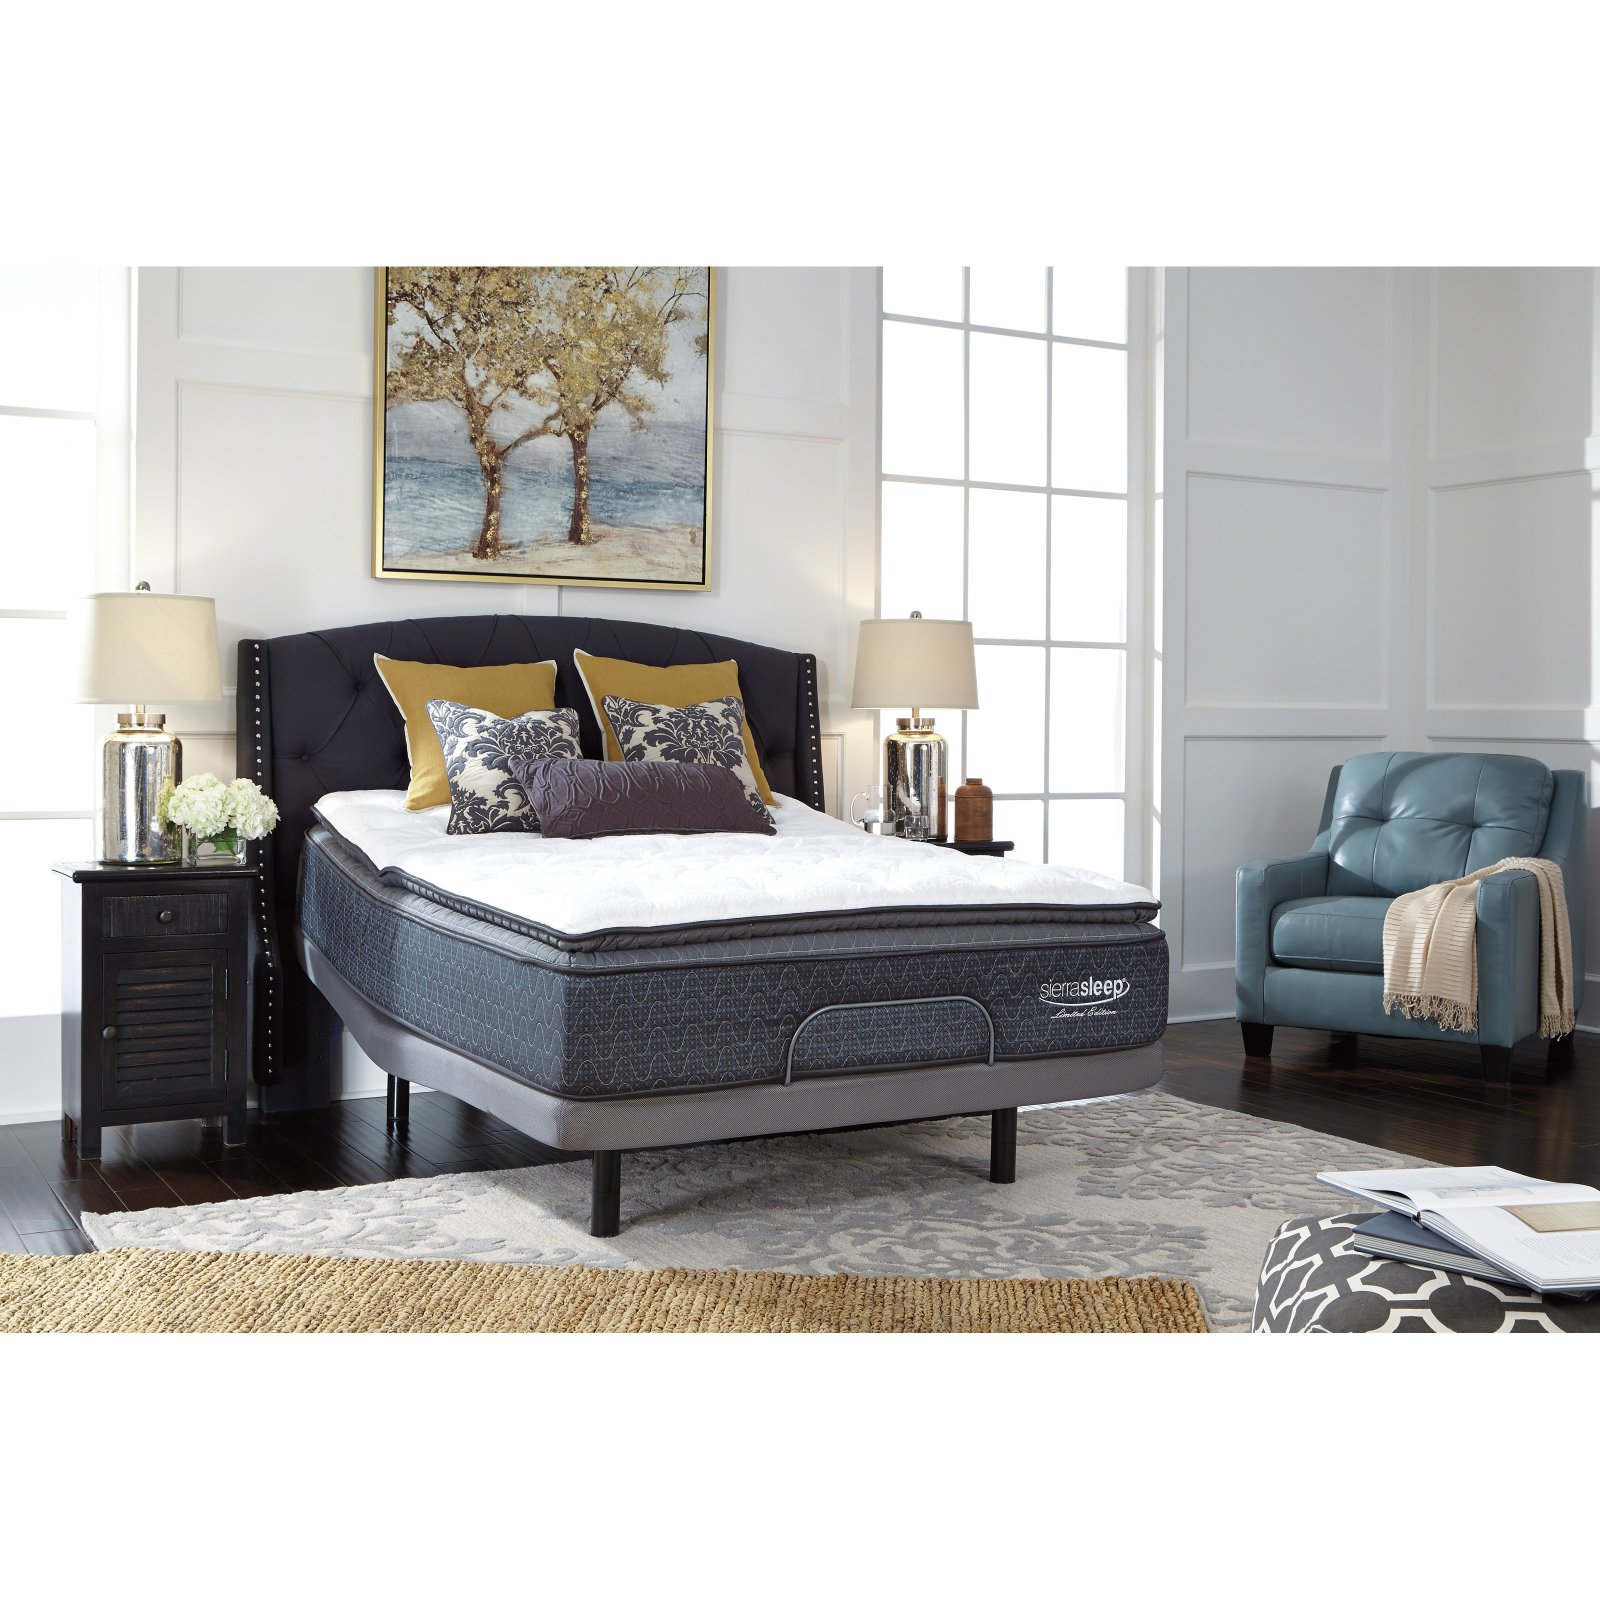 Sierra Sleep by Ashley Limited Edition 15 in. Pillowtop Mattress